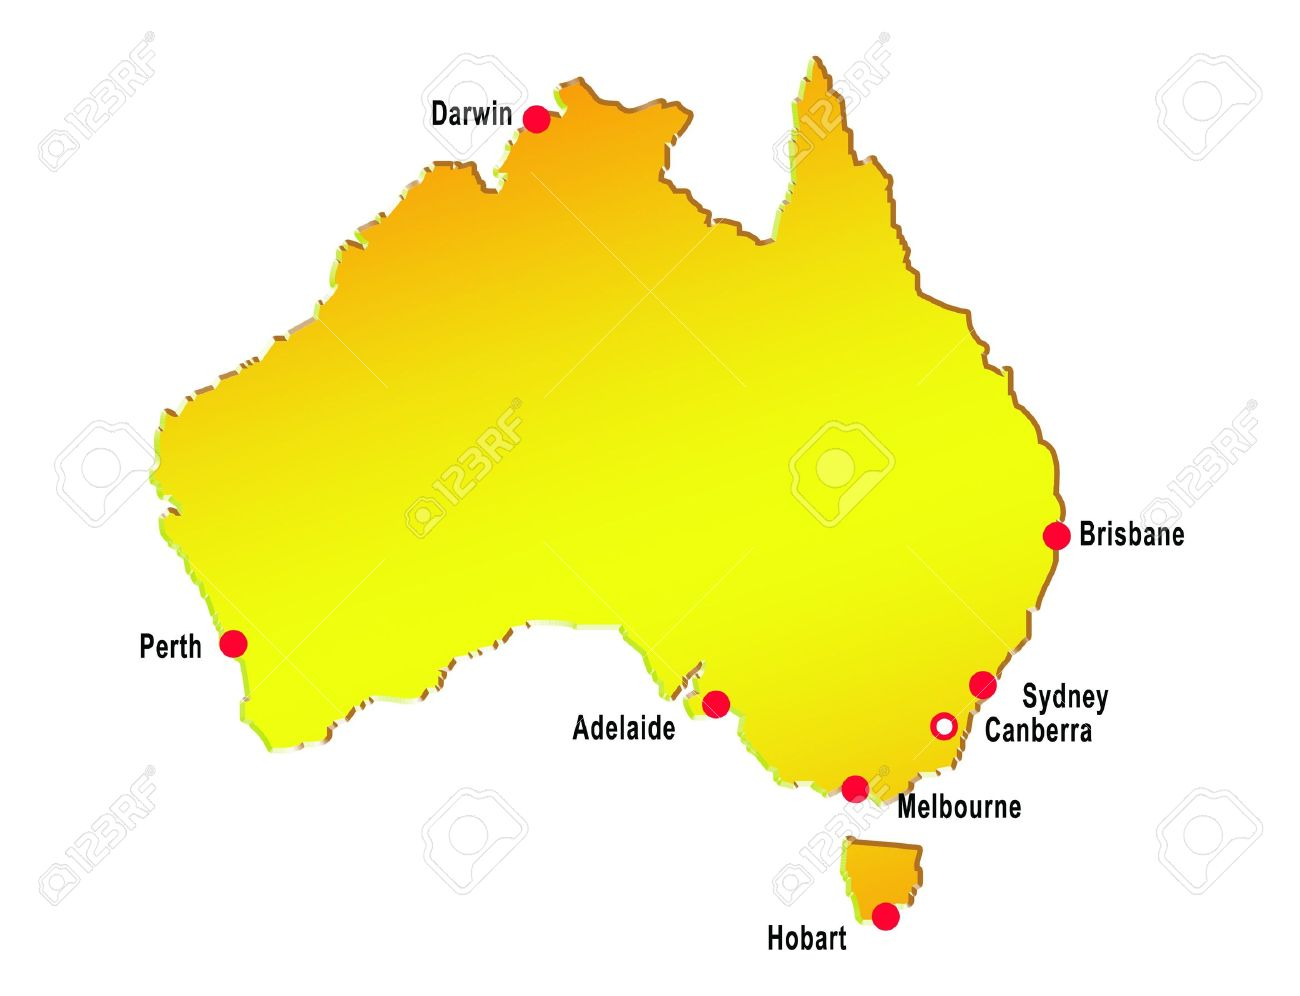 Map Of Australia With Major Cities Stock Photo  Picture And Royalty     map of australia with major cities Stock Photo   6195772